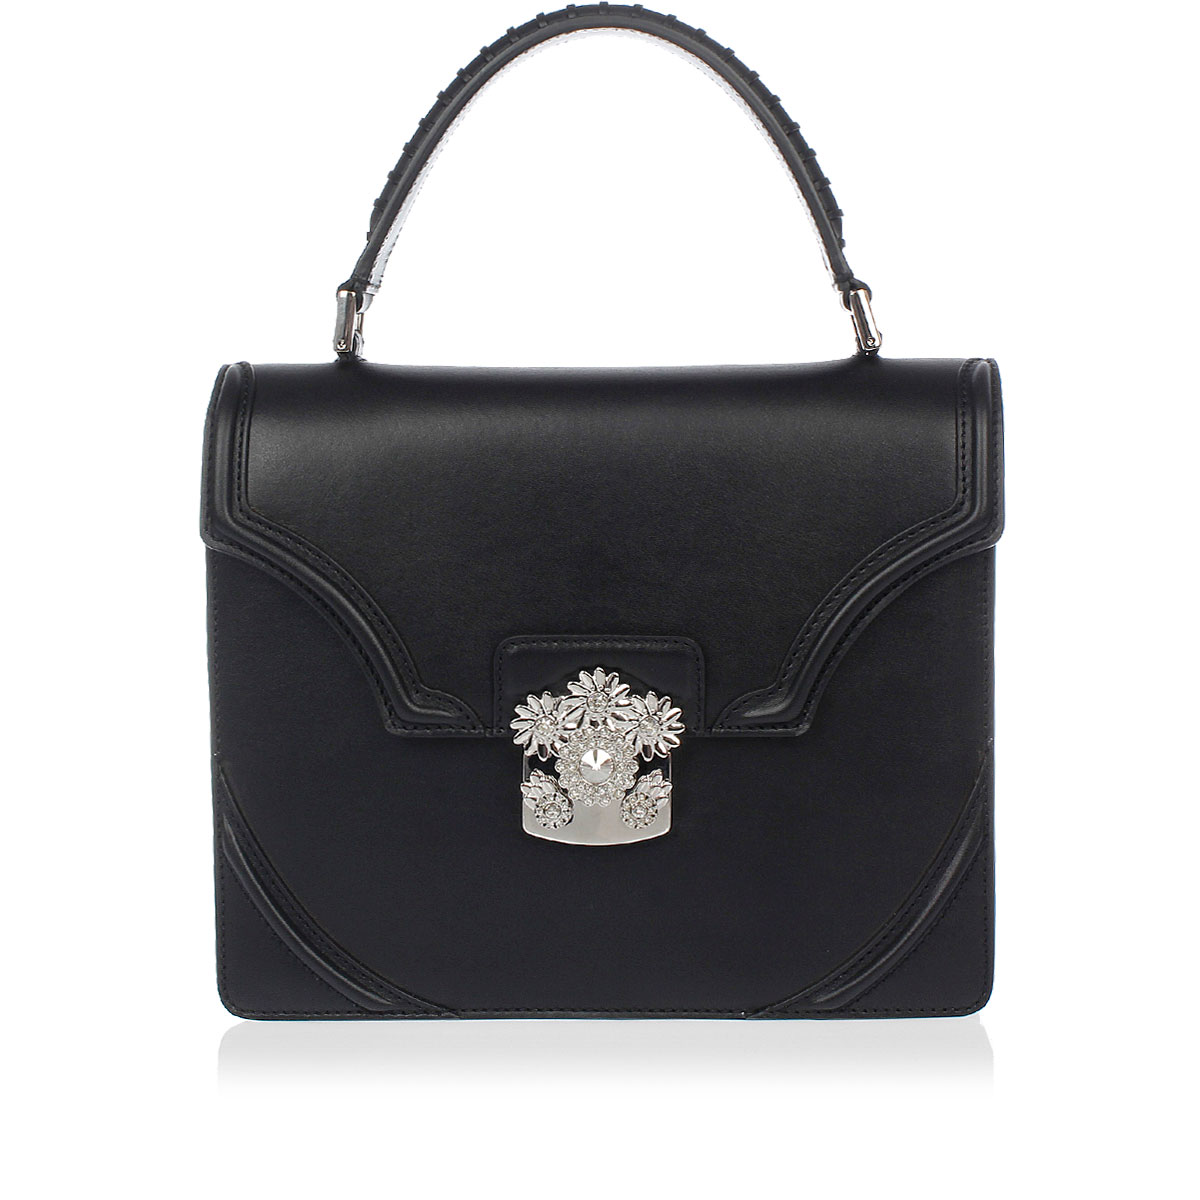 74871875fa ALEXANDER MCQUEEN Women Leather Satchel Bag with Floral Jewel ...